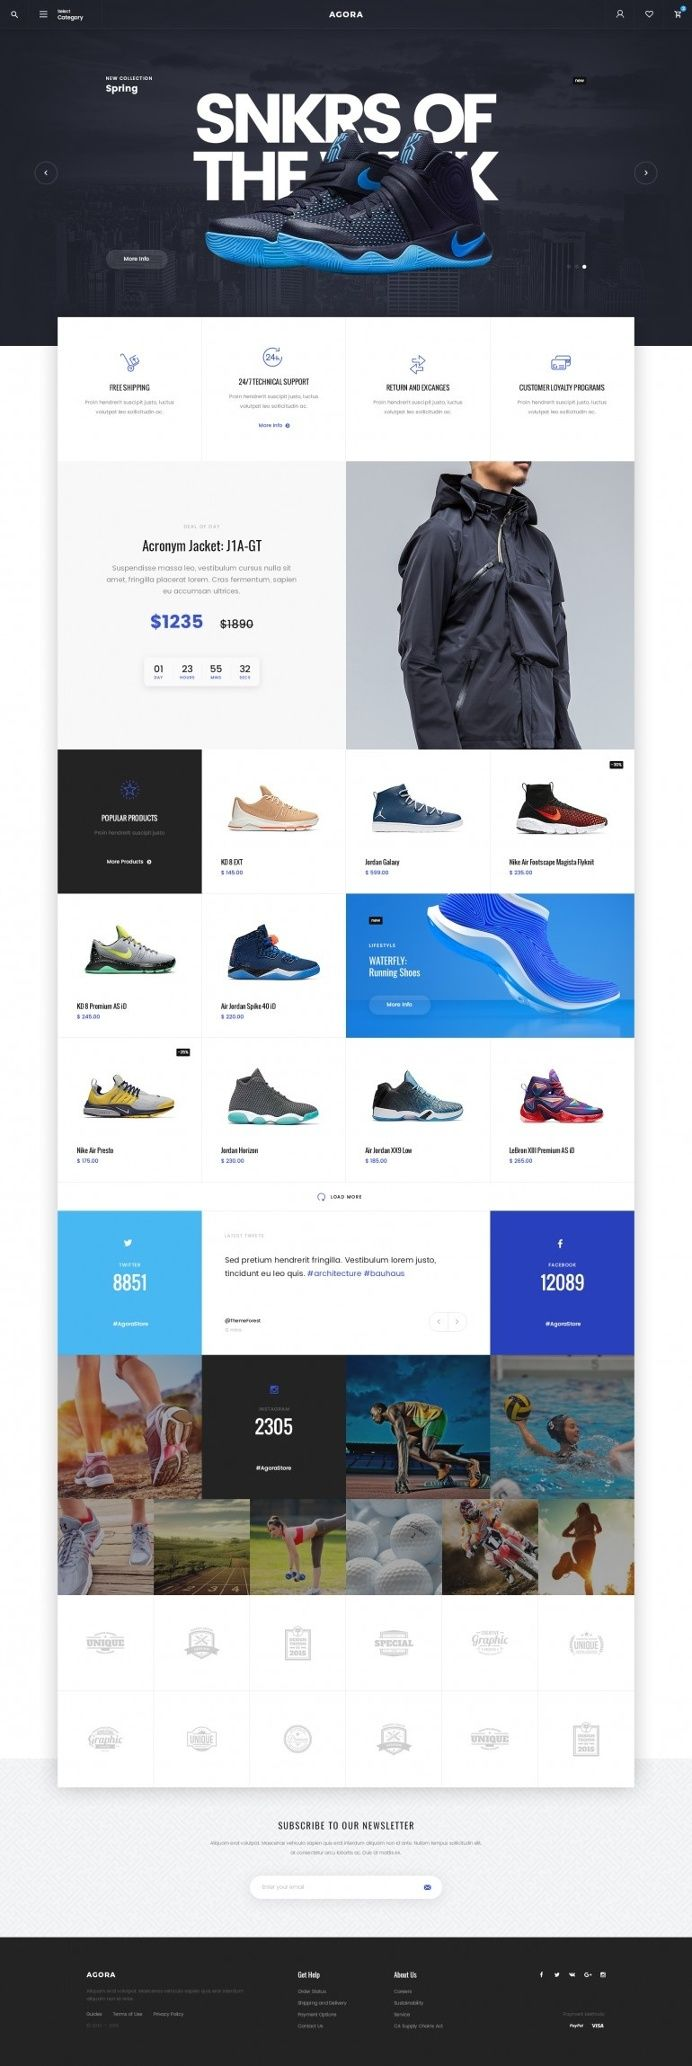 Designspiration — Design Inspiration simple and clean ecommerce web layout ui…